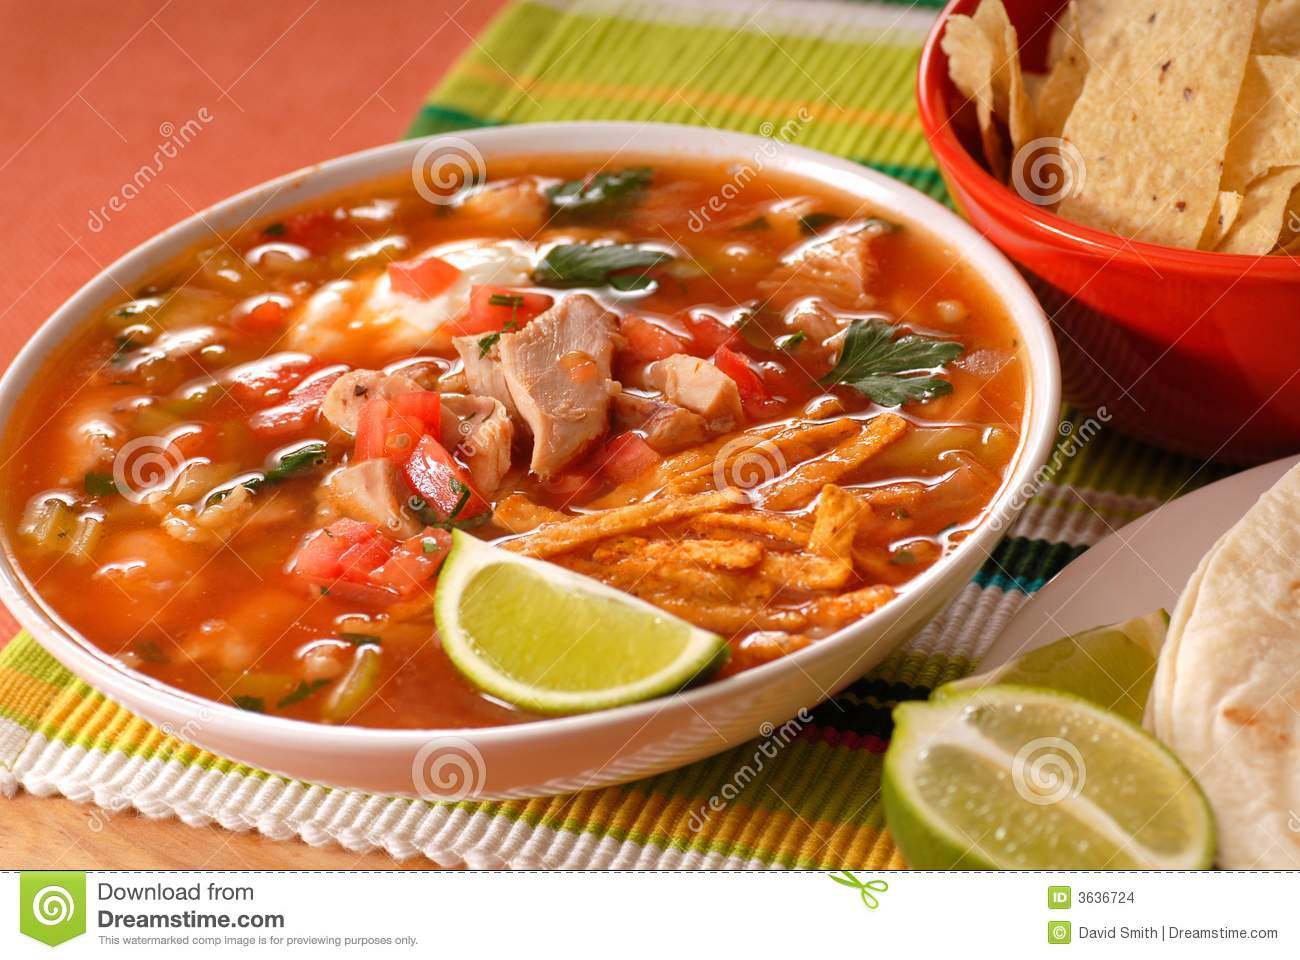 Chicken and tortilla soup